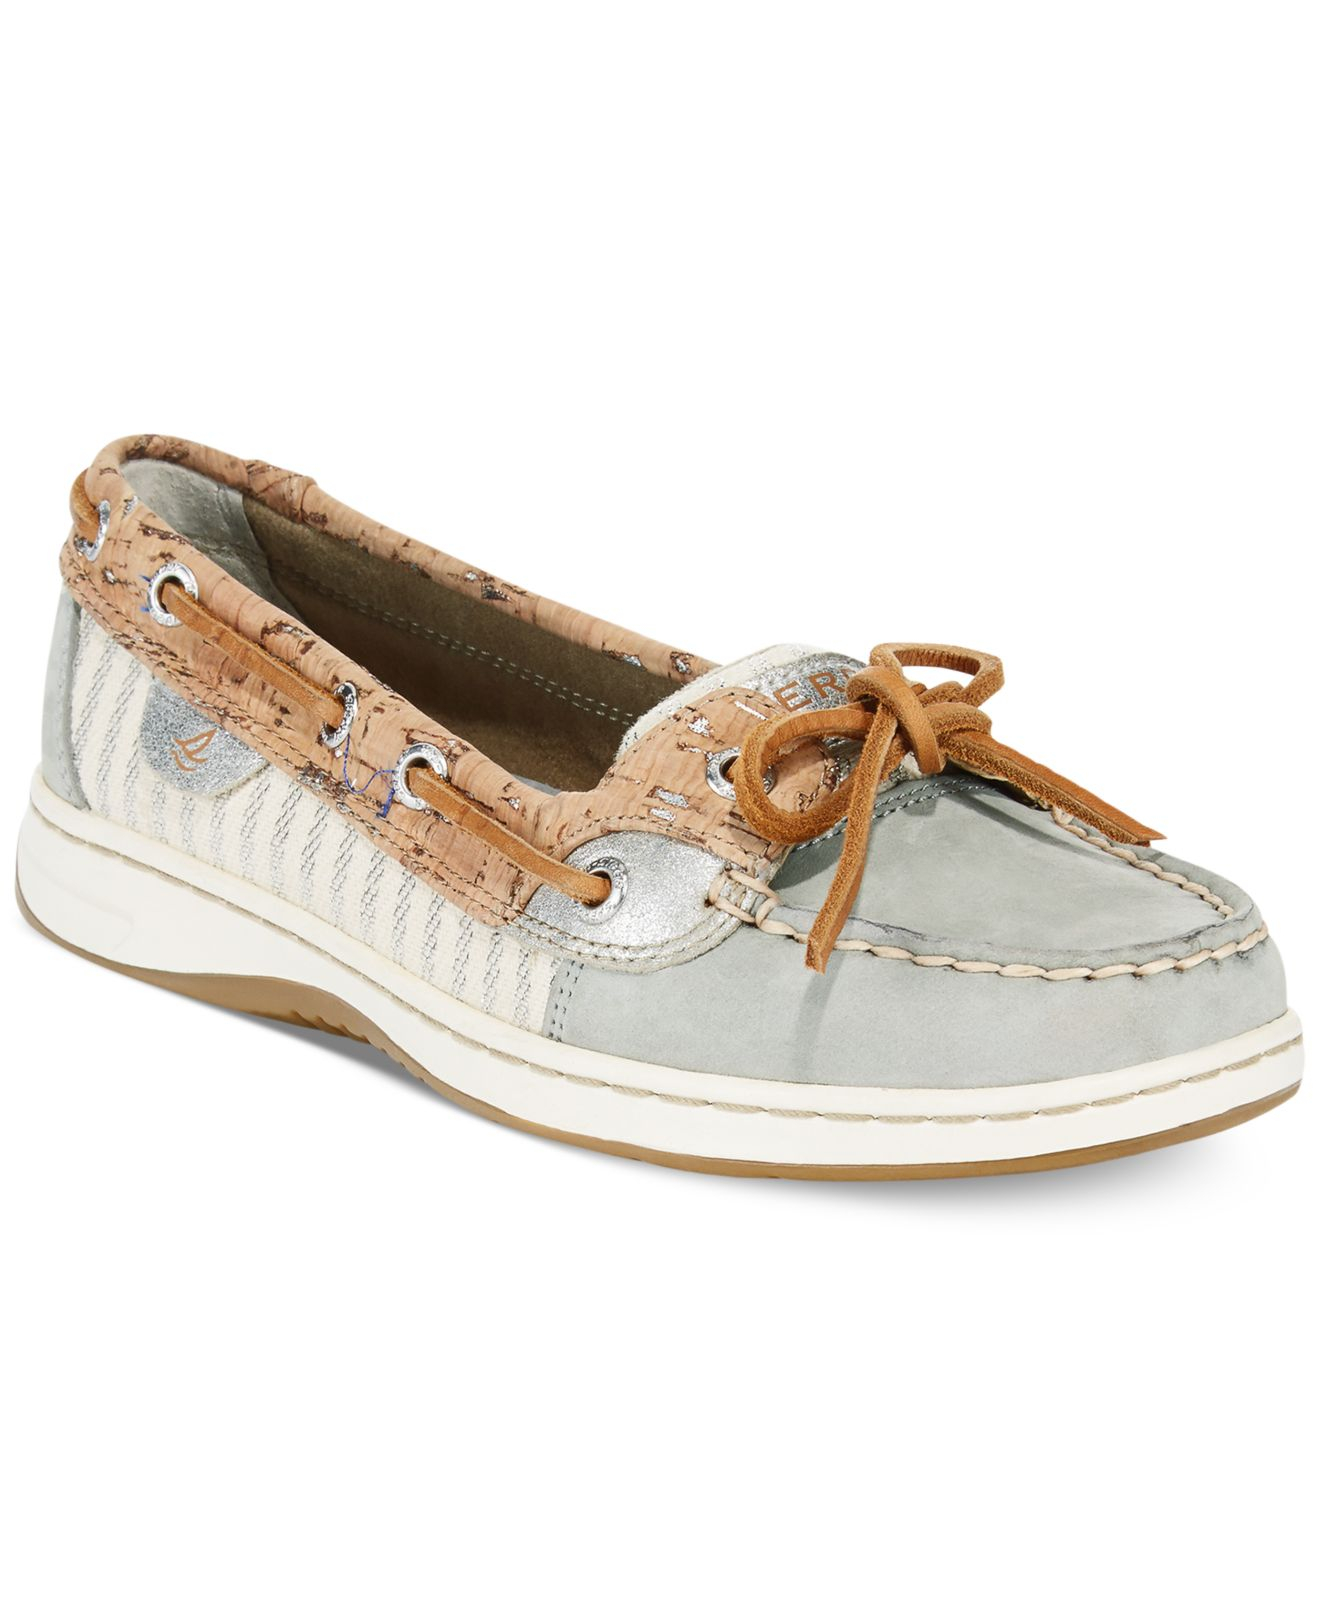 Sperry top sider women 39 s angelfish cork boat shoes in gray for Best boat shoes for fishing